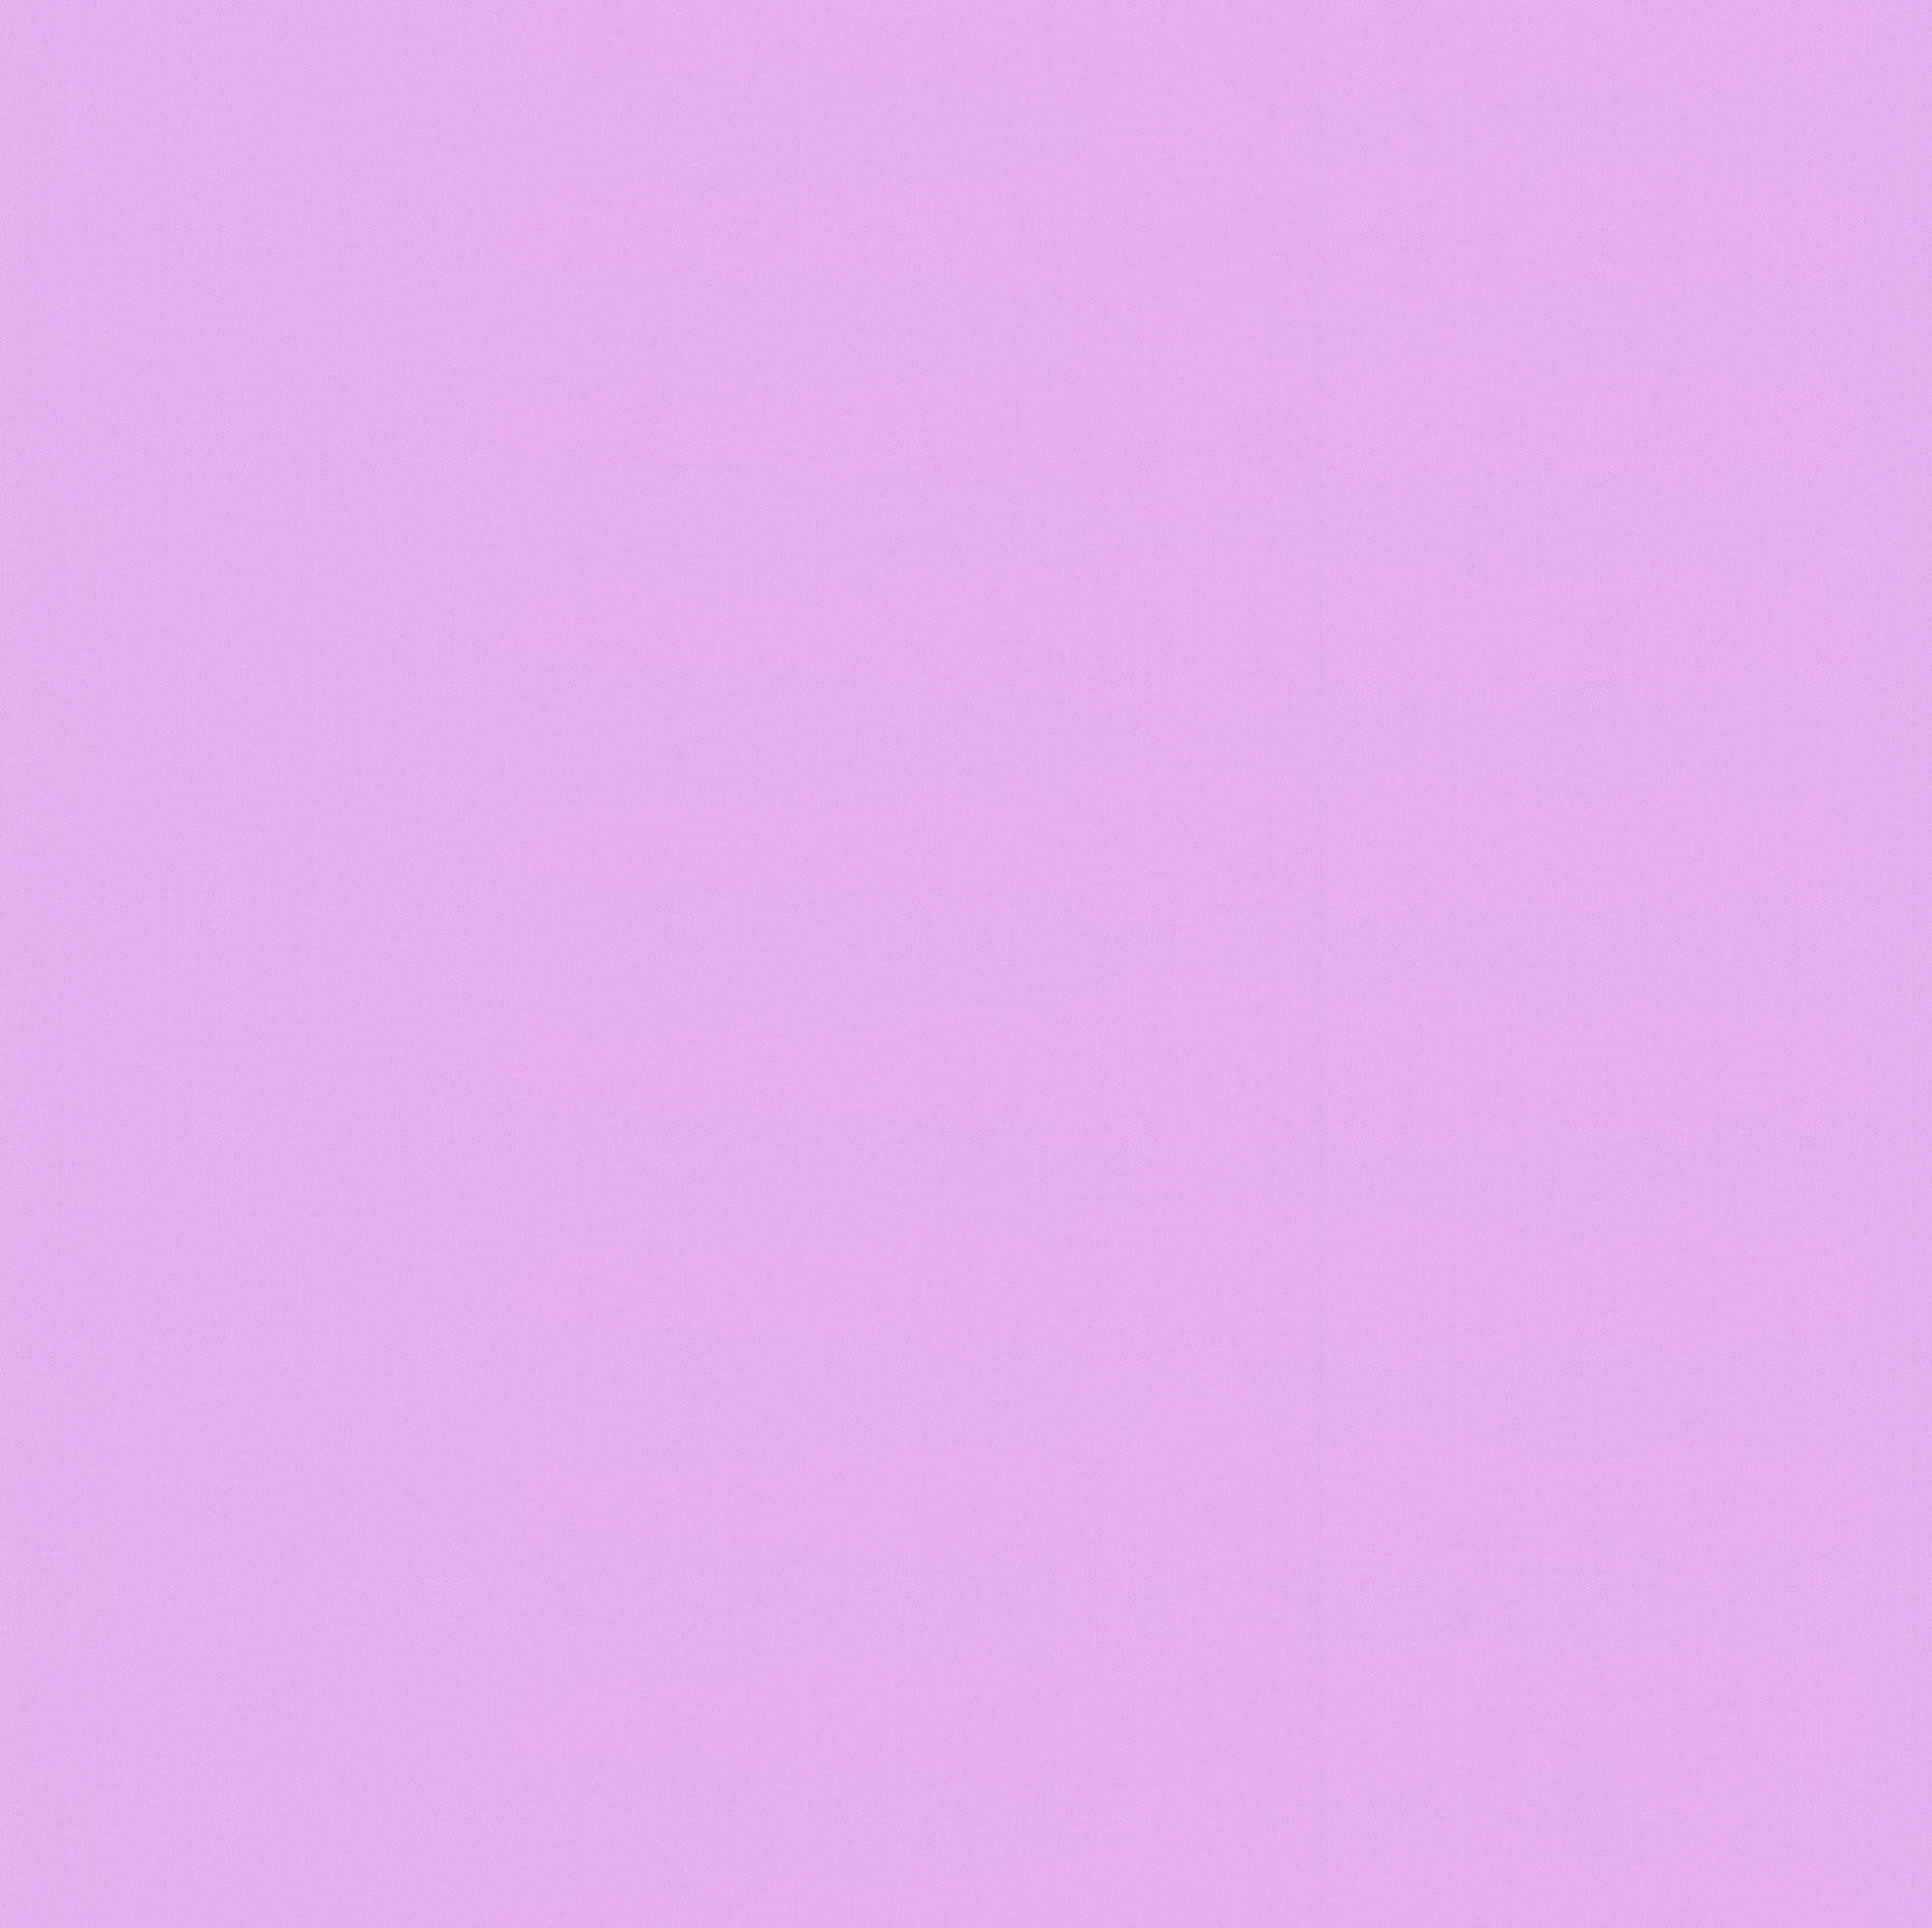 plain wallpaper for desktop purple (58+ images)